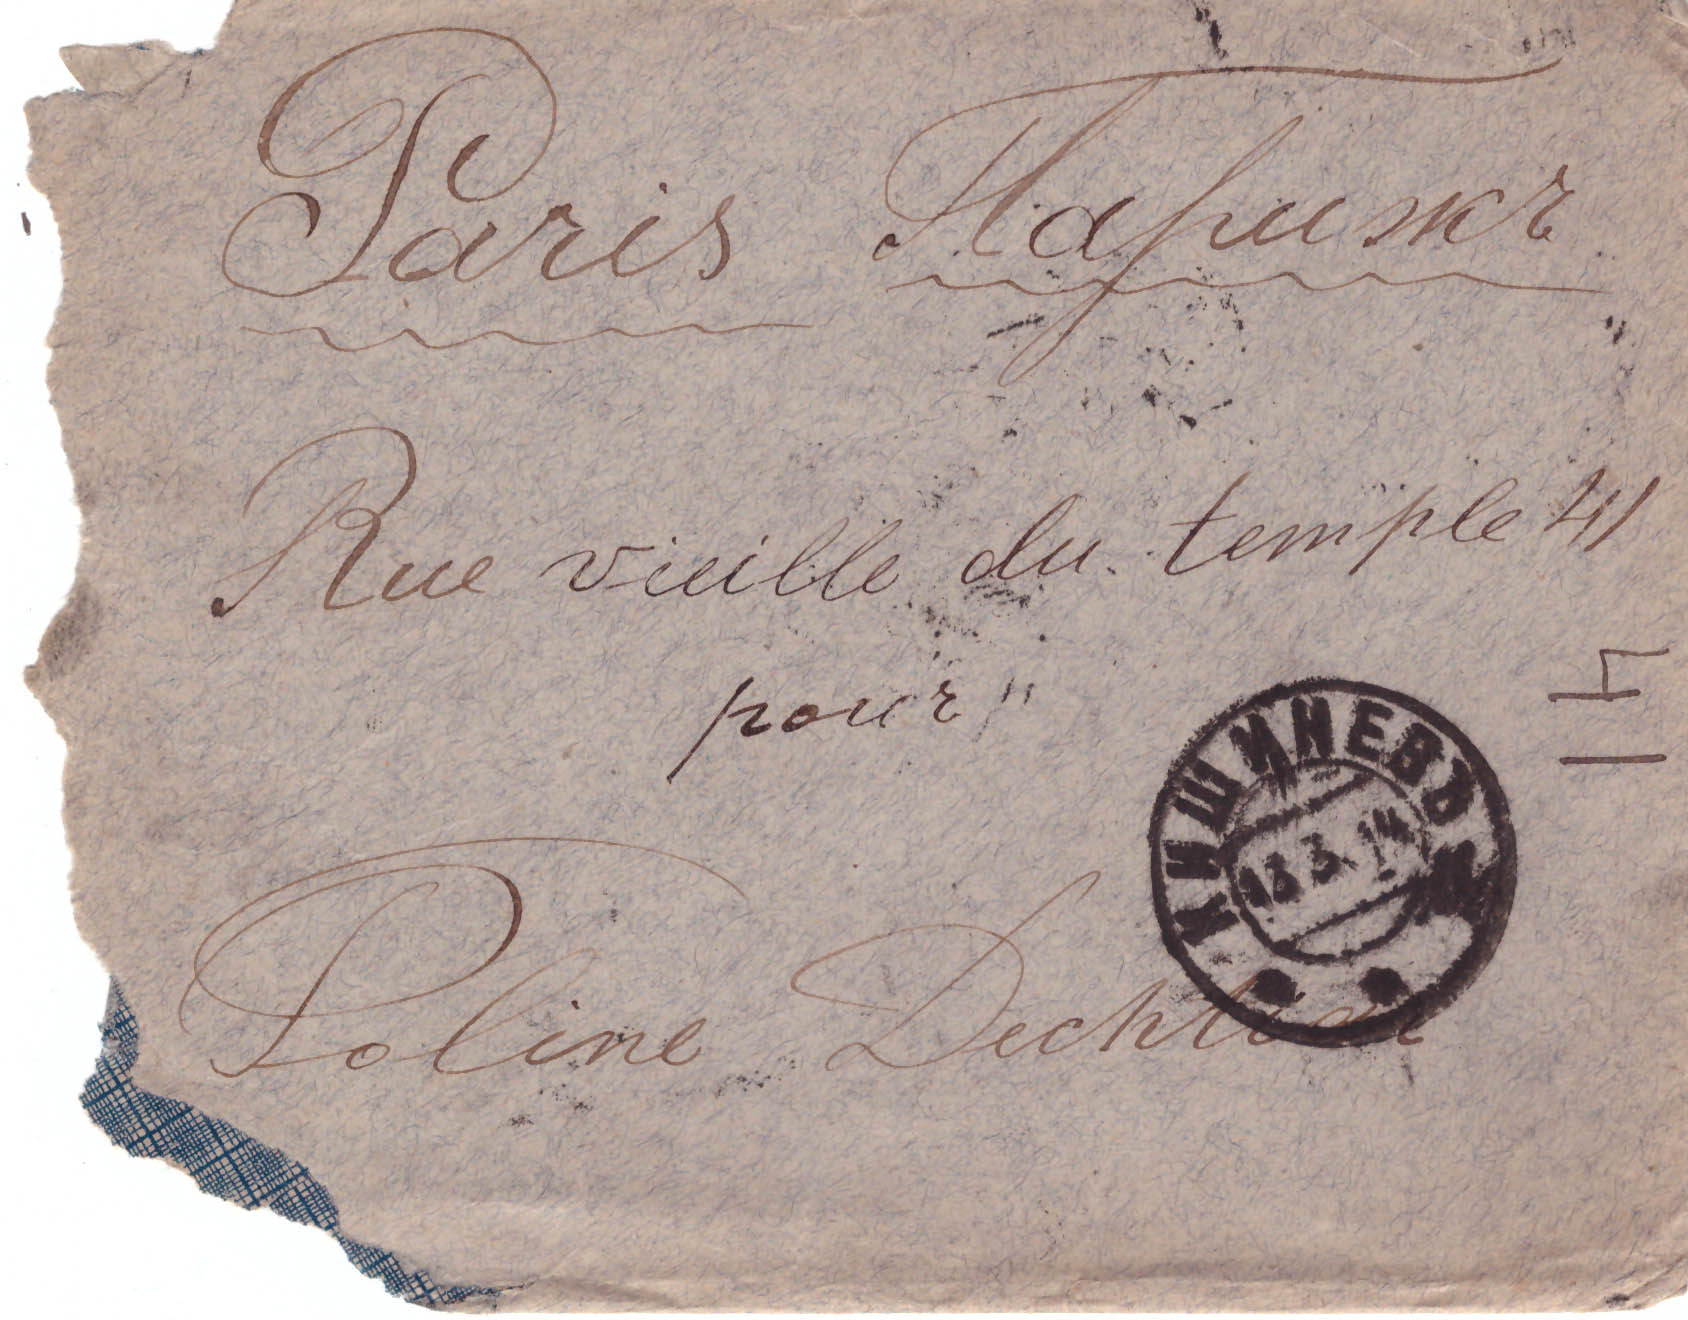 Letter to Poline from Aron March 12, 1914 envelope A